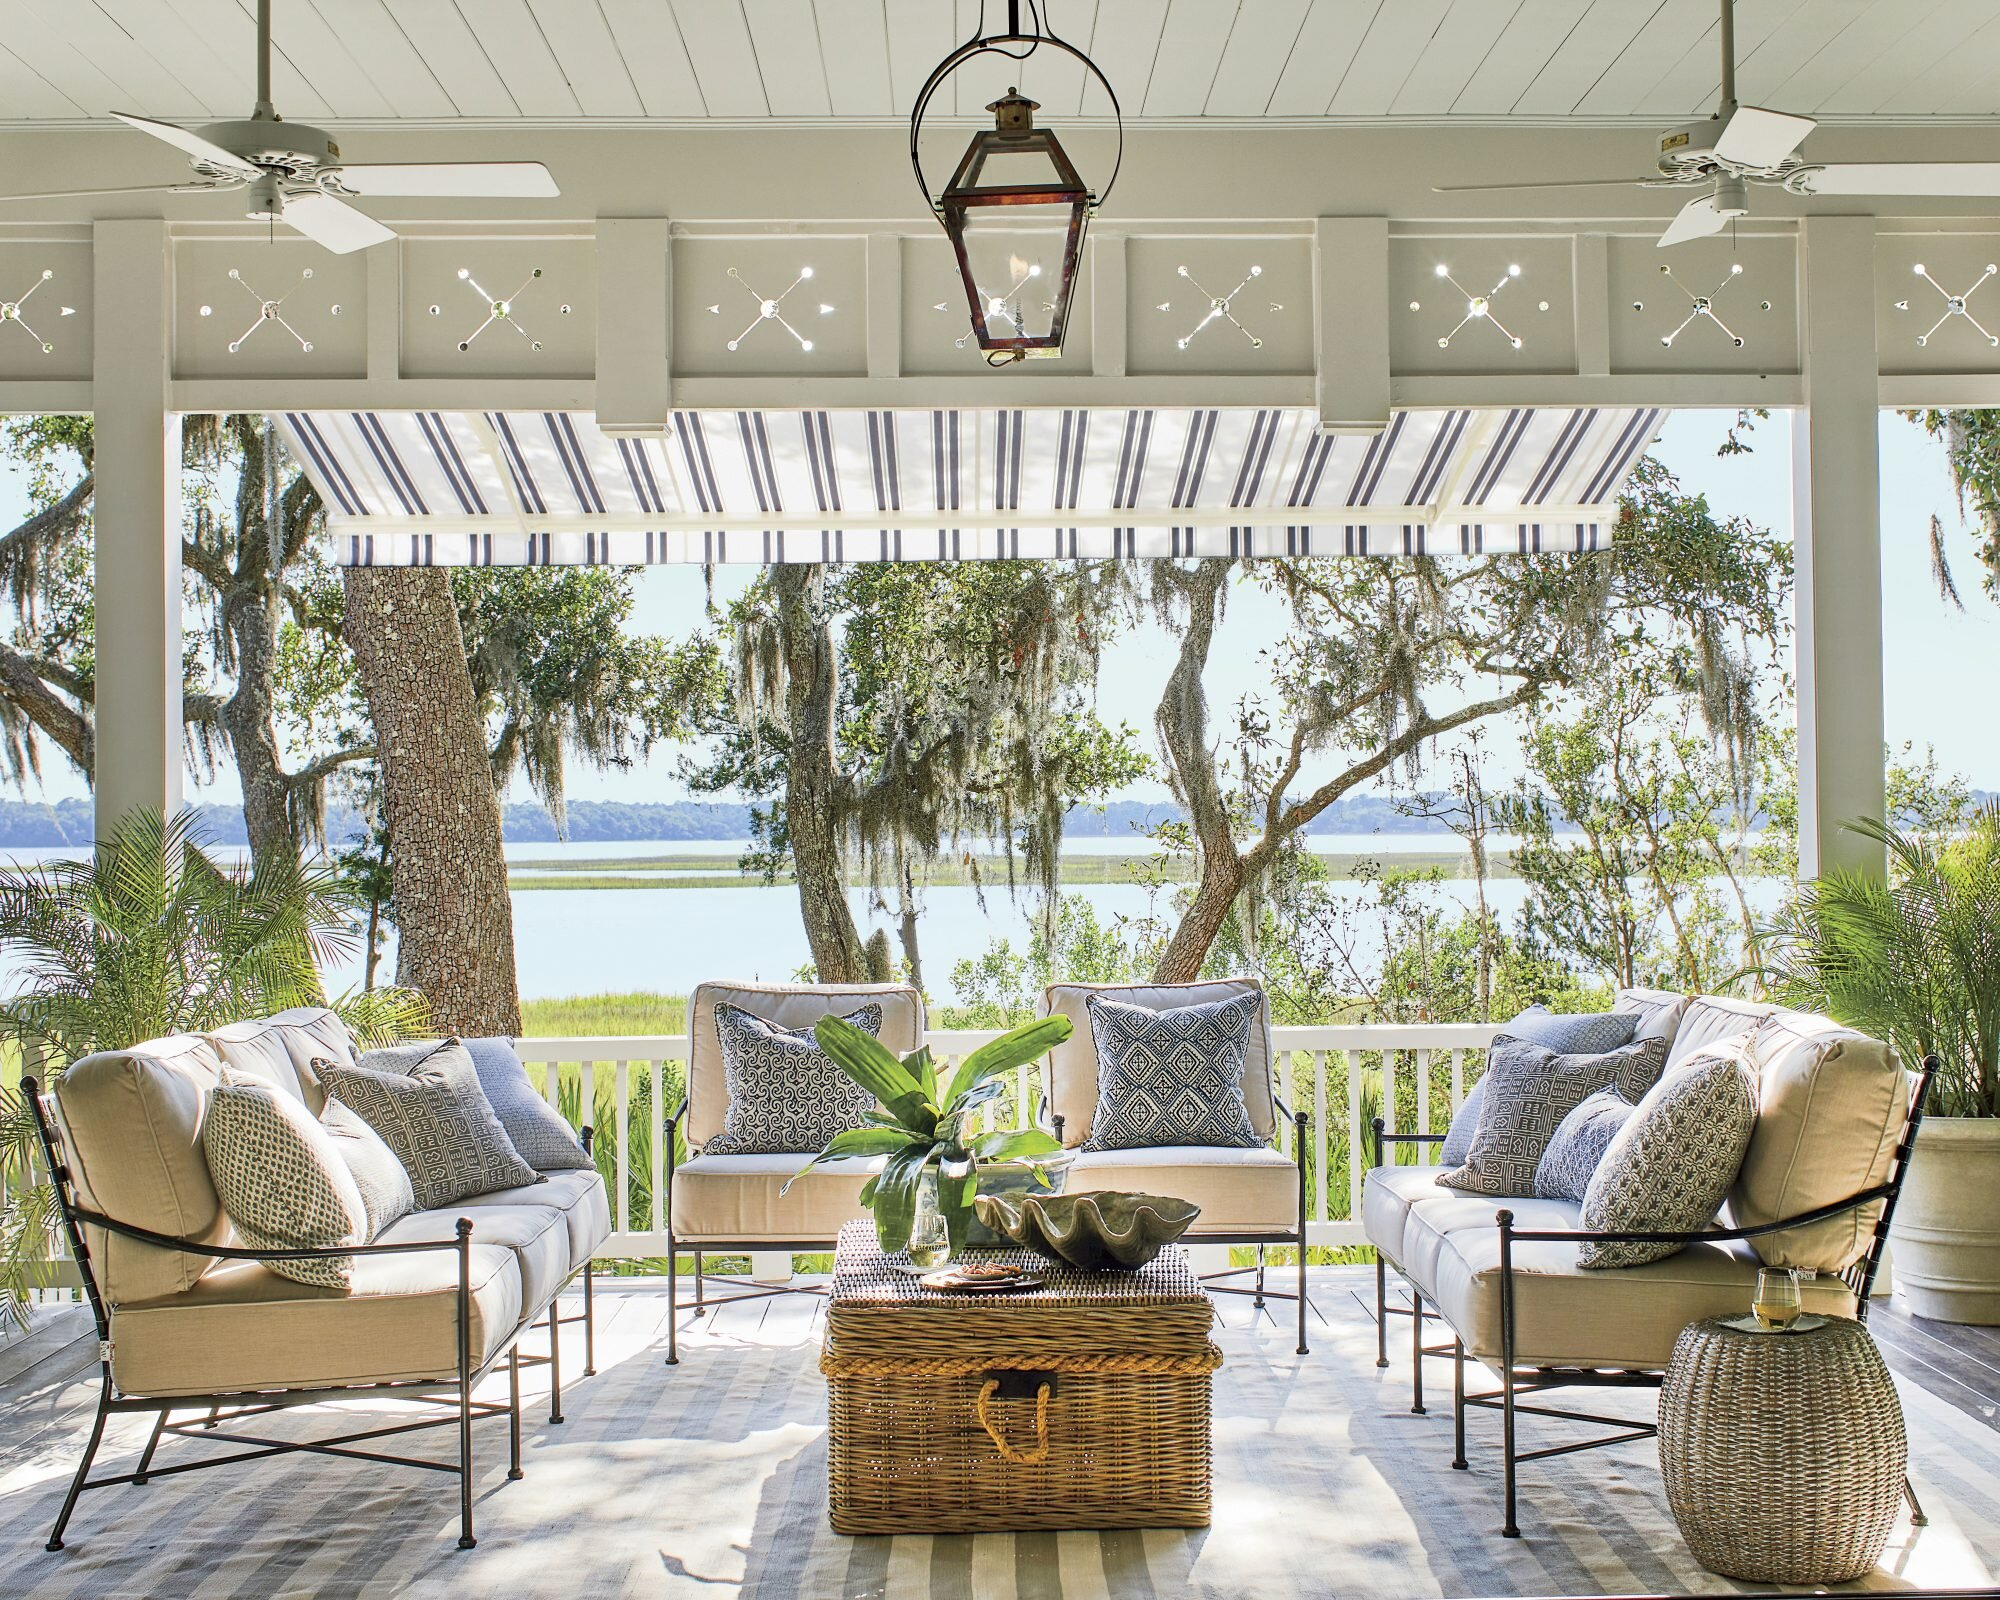 The 9 Best Outdoor Ceiling Fans Of 2021 According To Reviews Southern Living